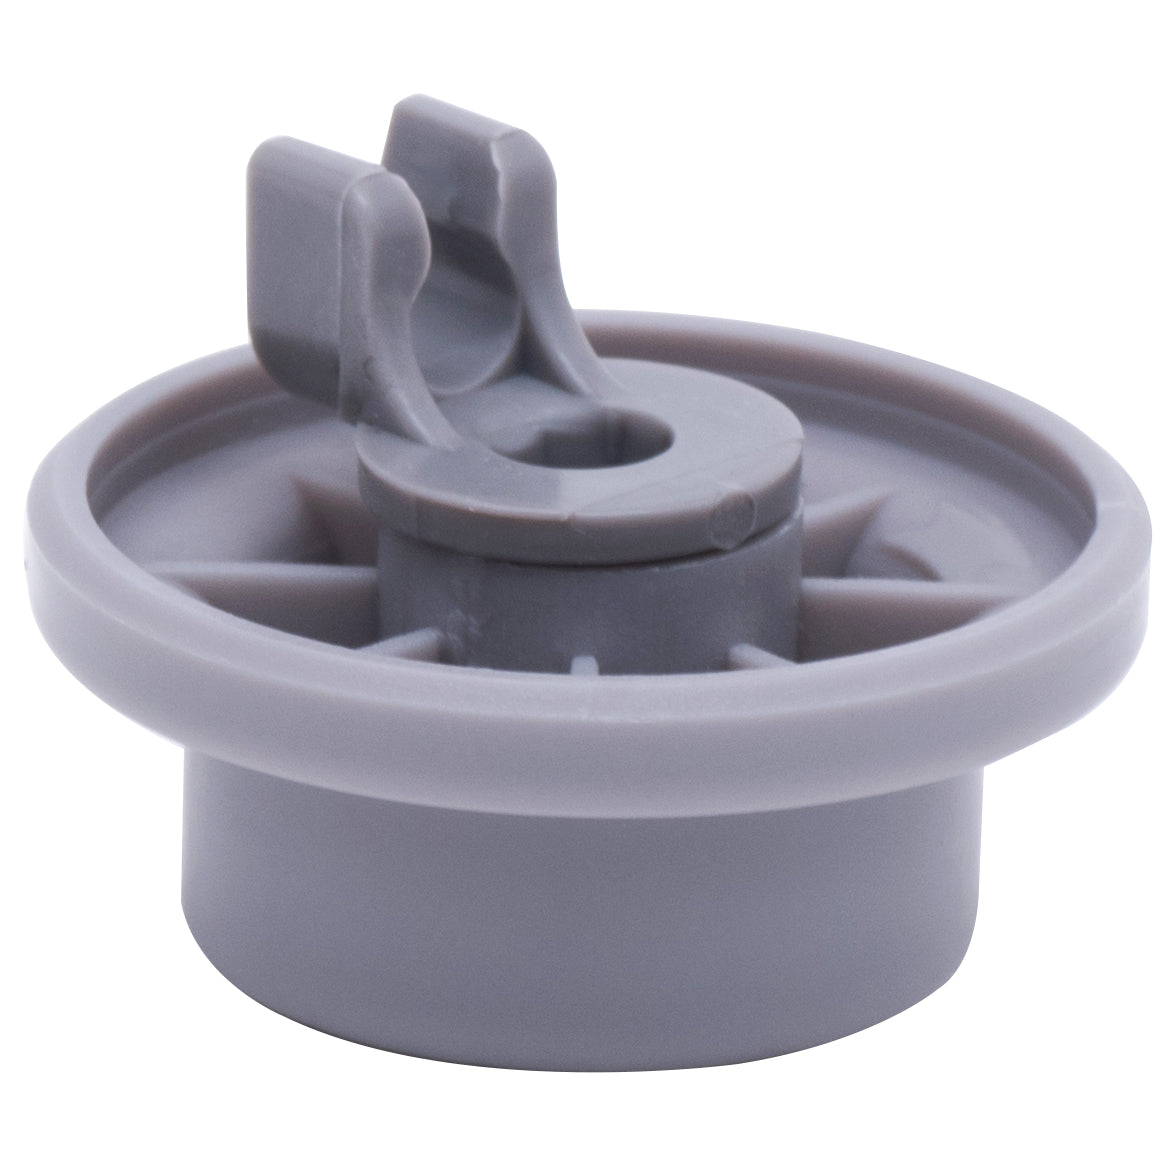 Bluestars Quality Replacement Parts